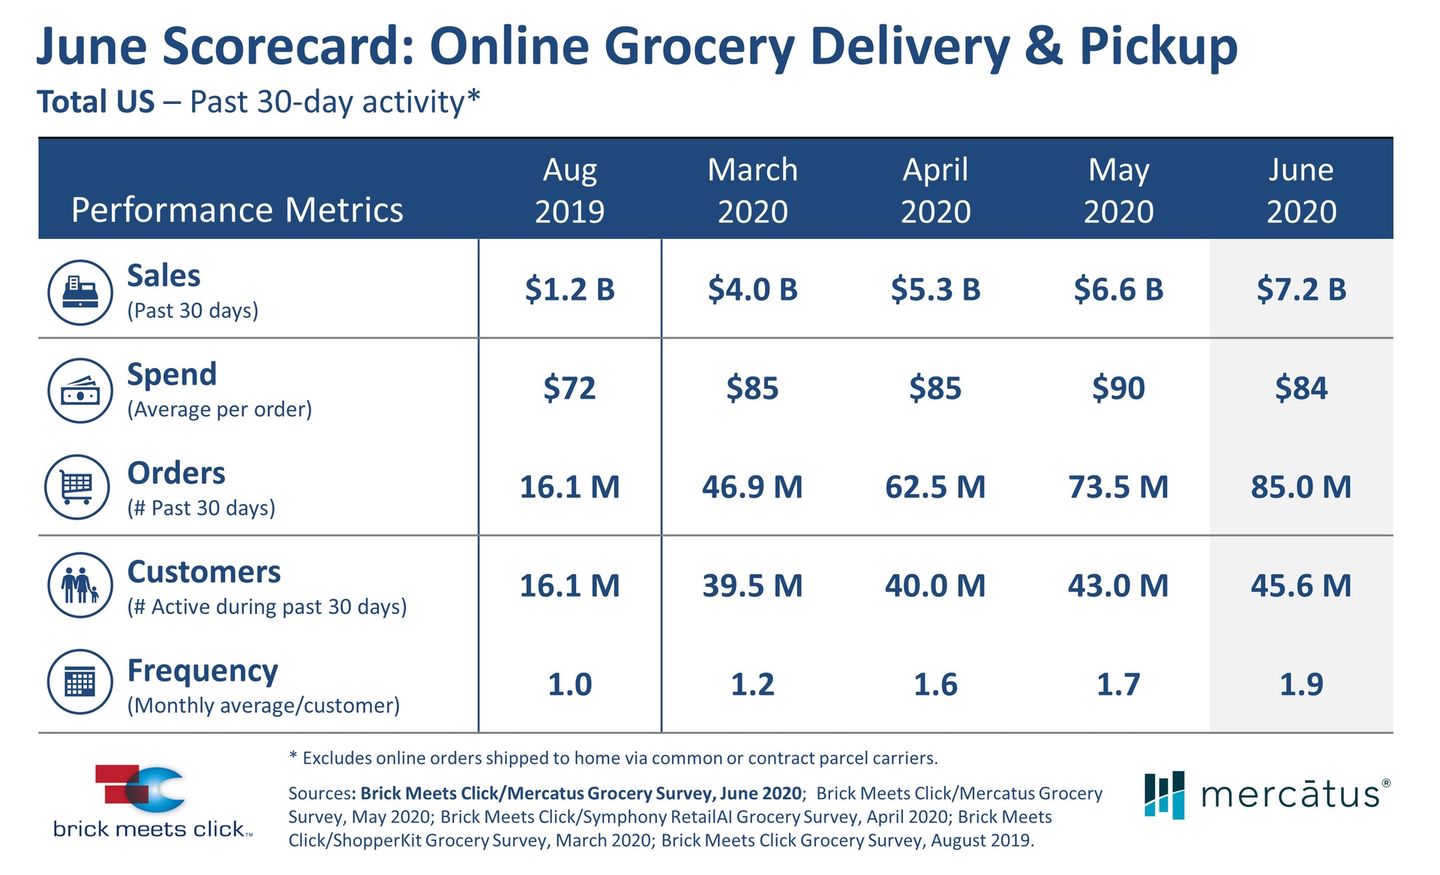 In June, U.S. online grocery sales reached $7.2 billion, a 9% increase over May, as 45.6 million households used delivery and pickup services to satisfy a larger portion of their grocery needs, according to a Brick Meets Click/Mercatus survey.